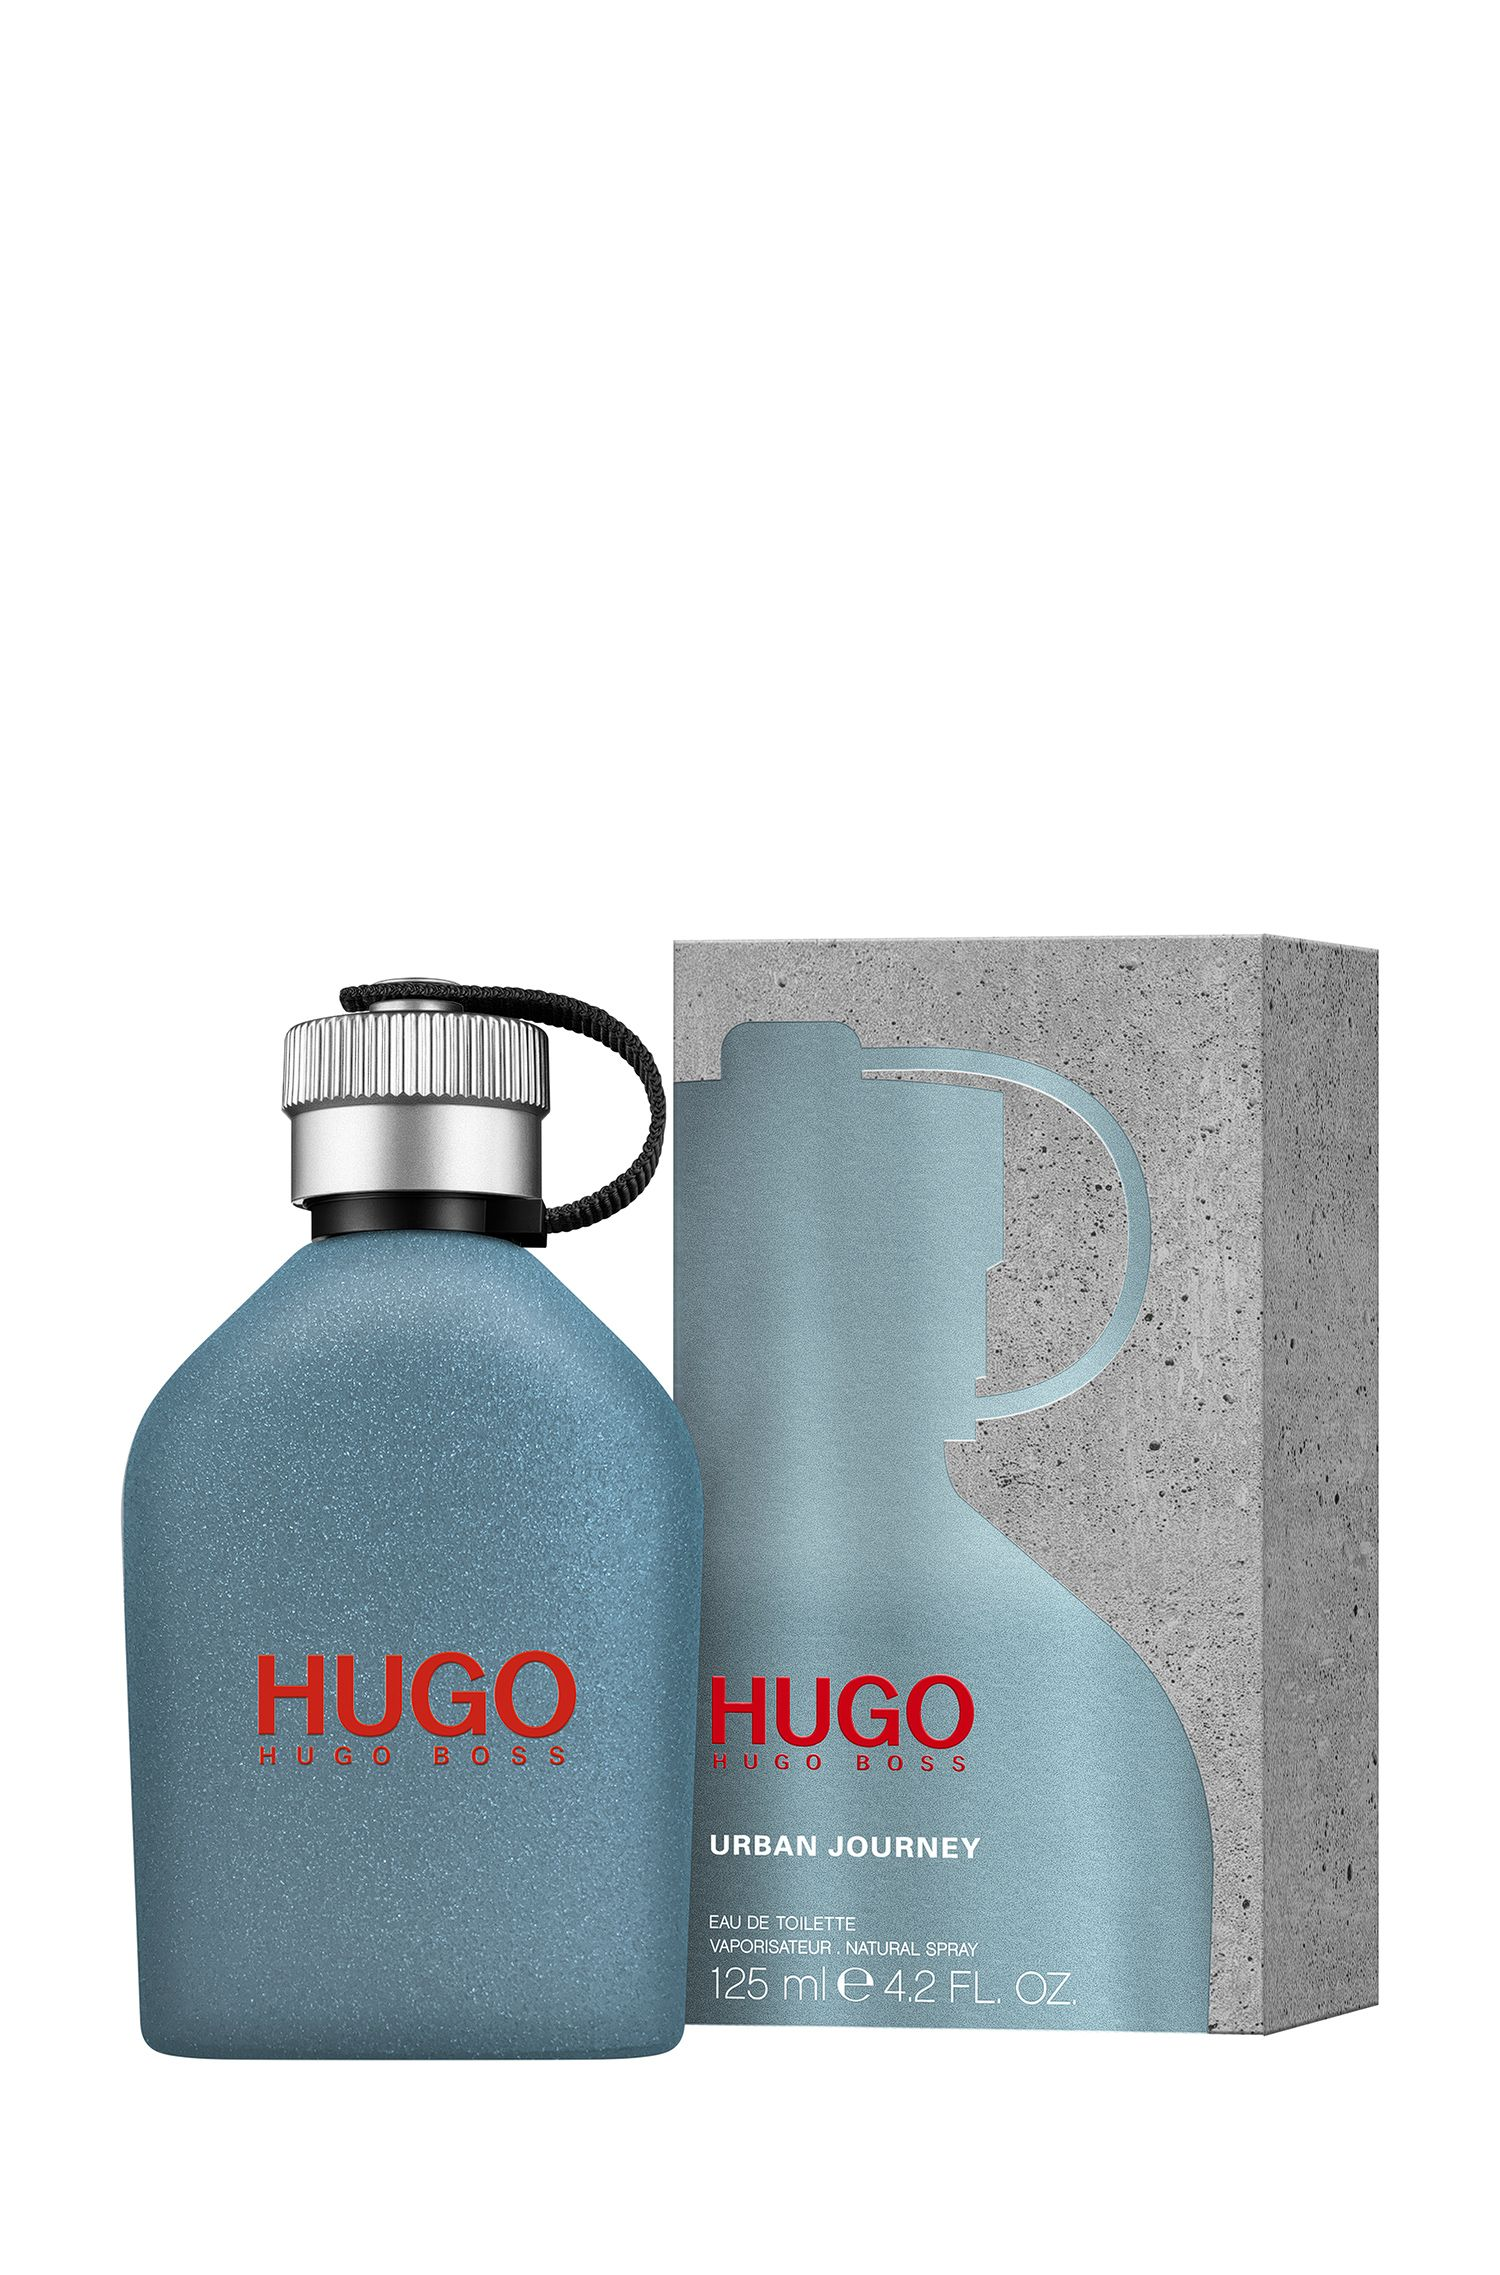 Eau de Toilette HUGO Urban Journey, 125 ml